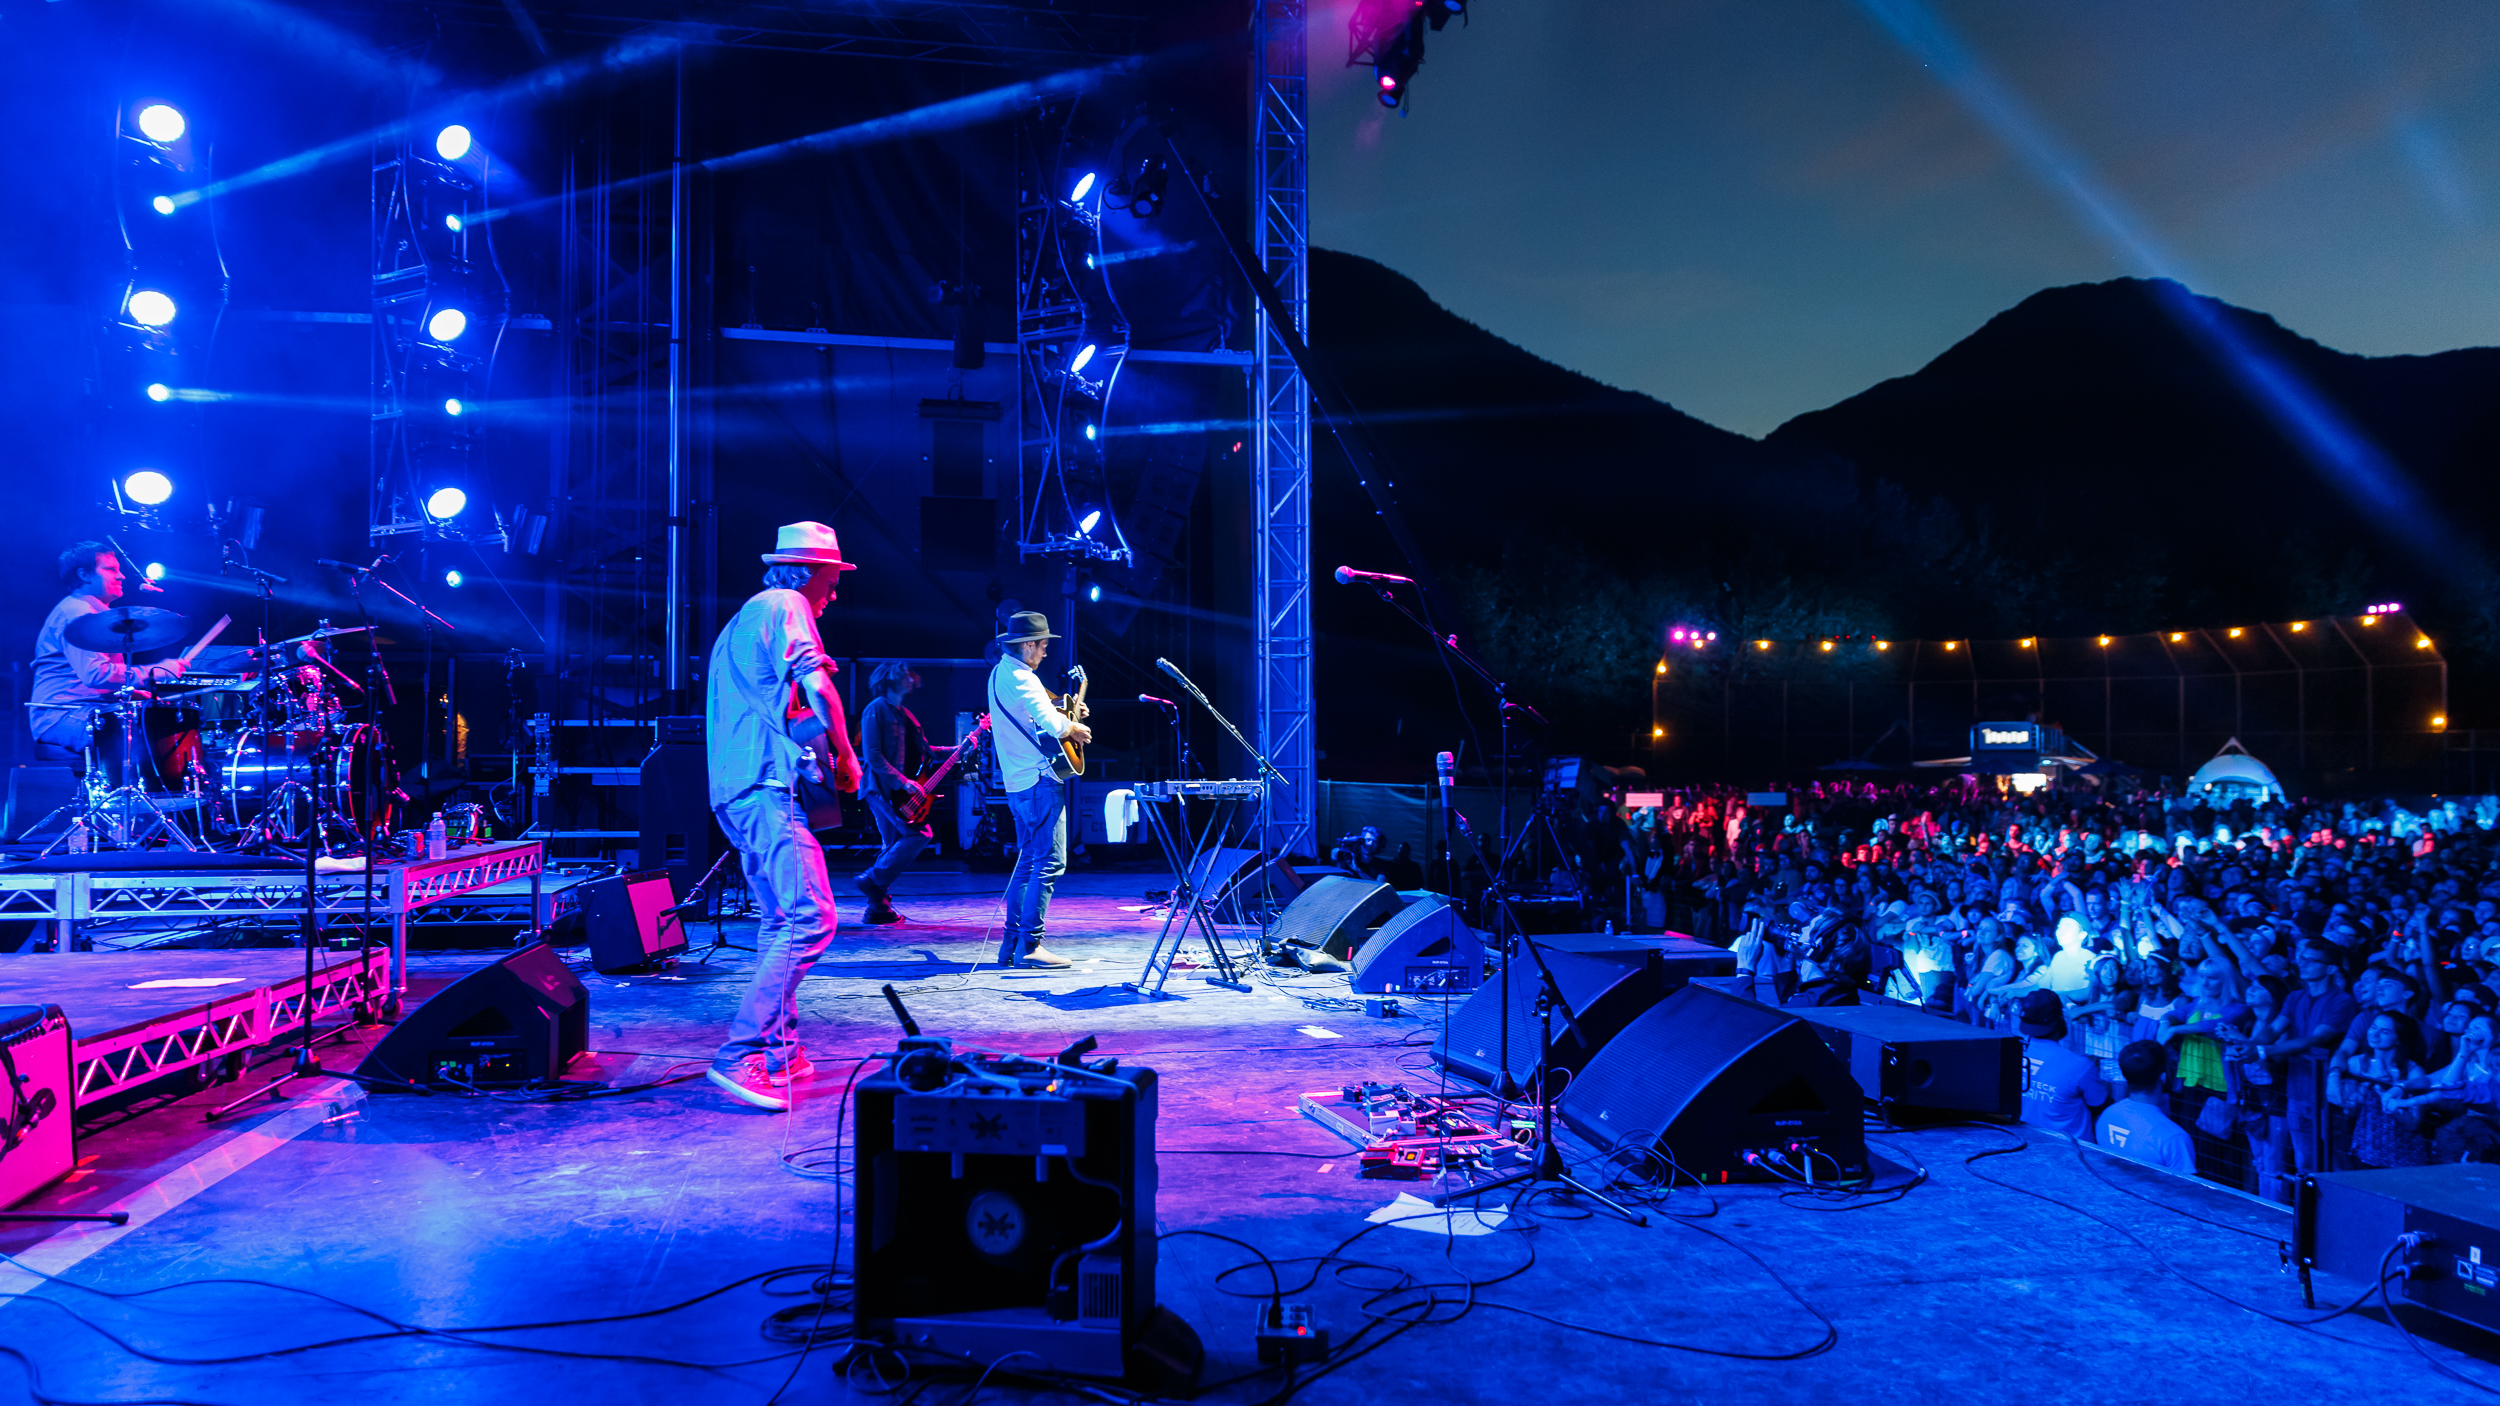 Squamish-Valley-Music-Festival-image-6.jpg